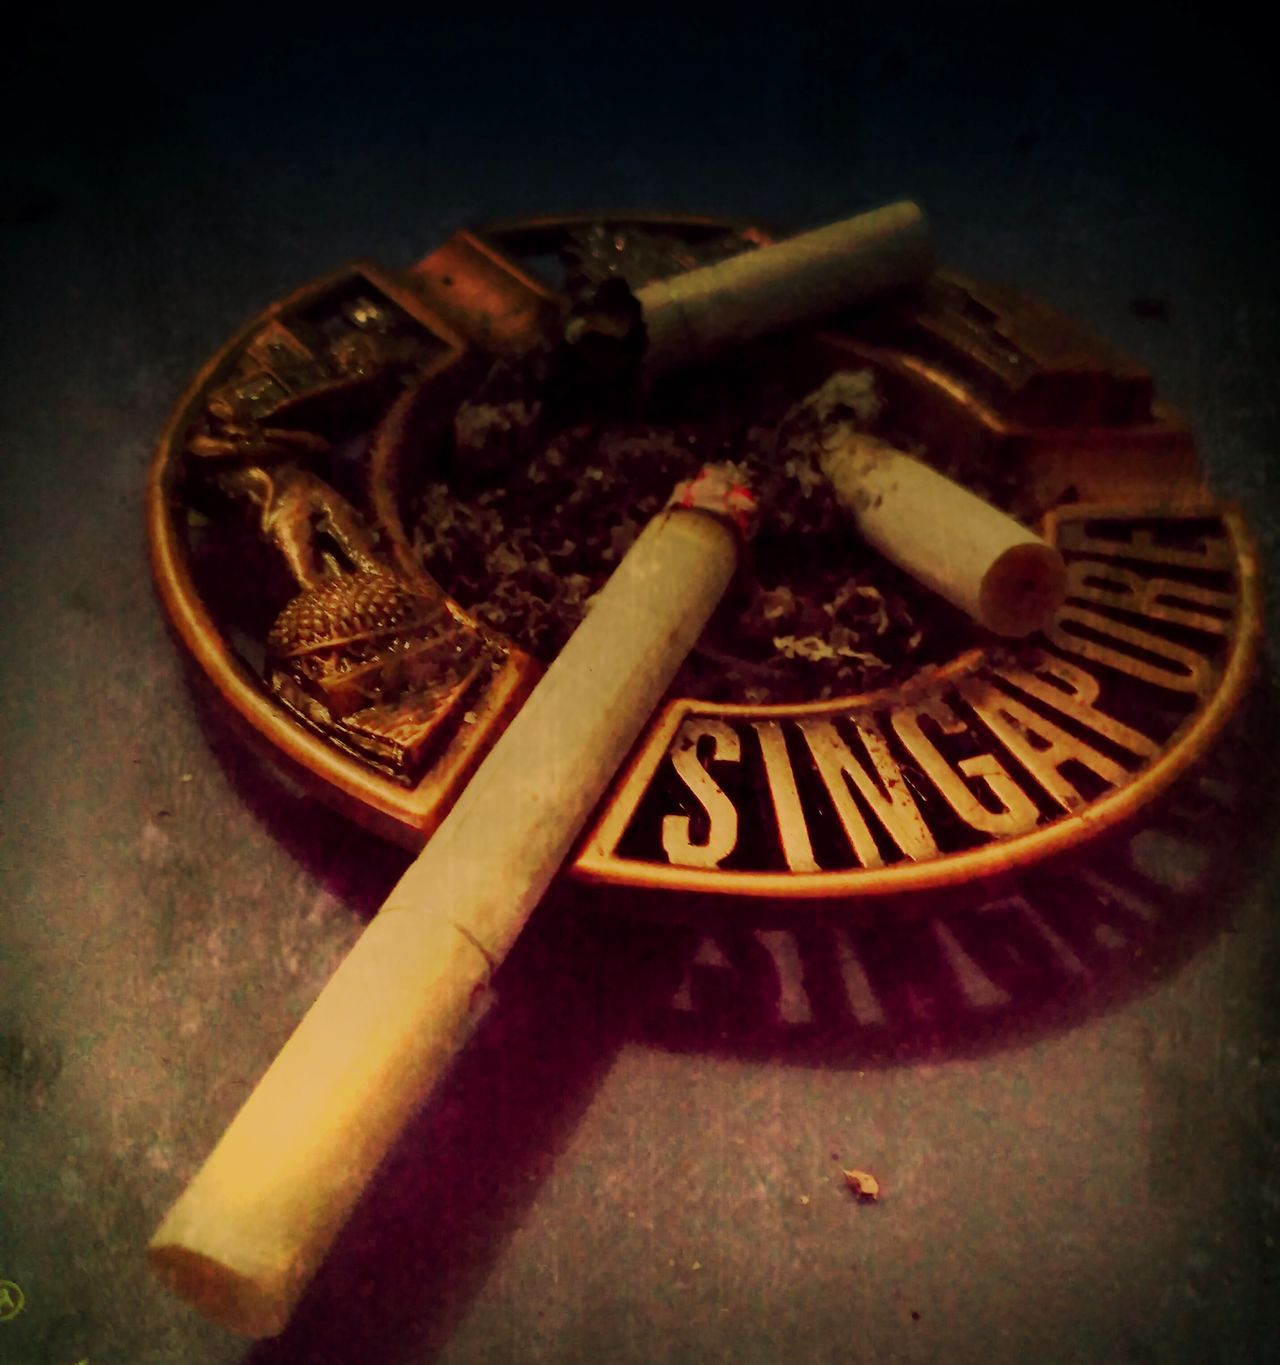 Smoking kills Cigarettes Kill Ashtray  People Common Addict First Eyeem Photo